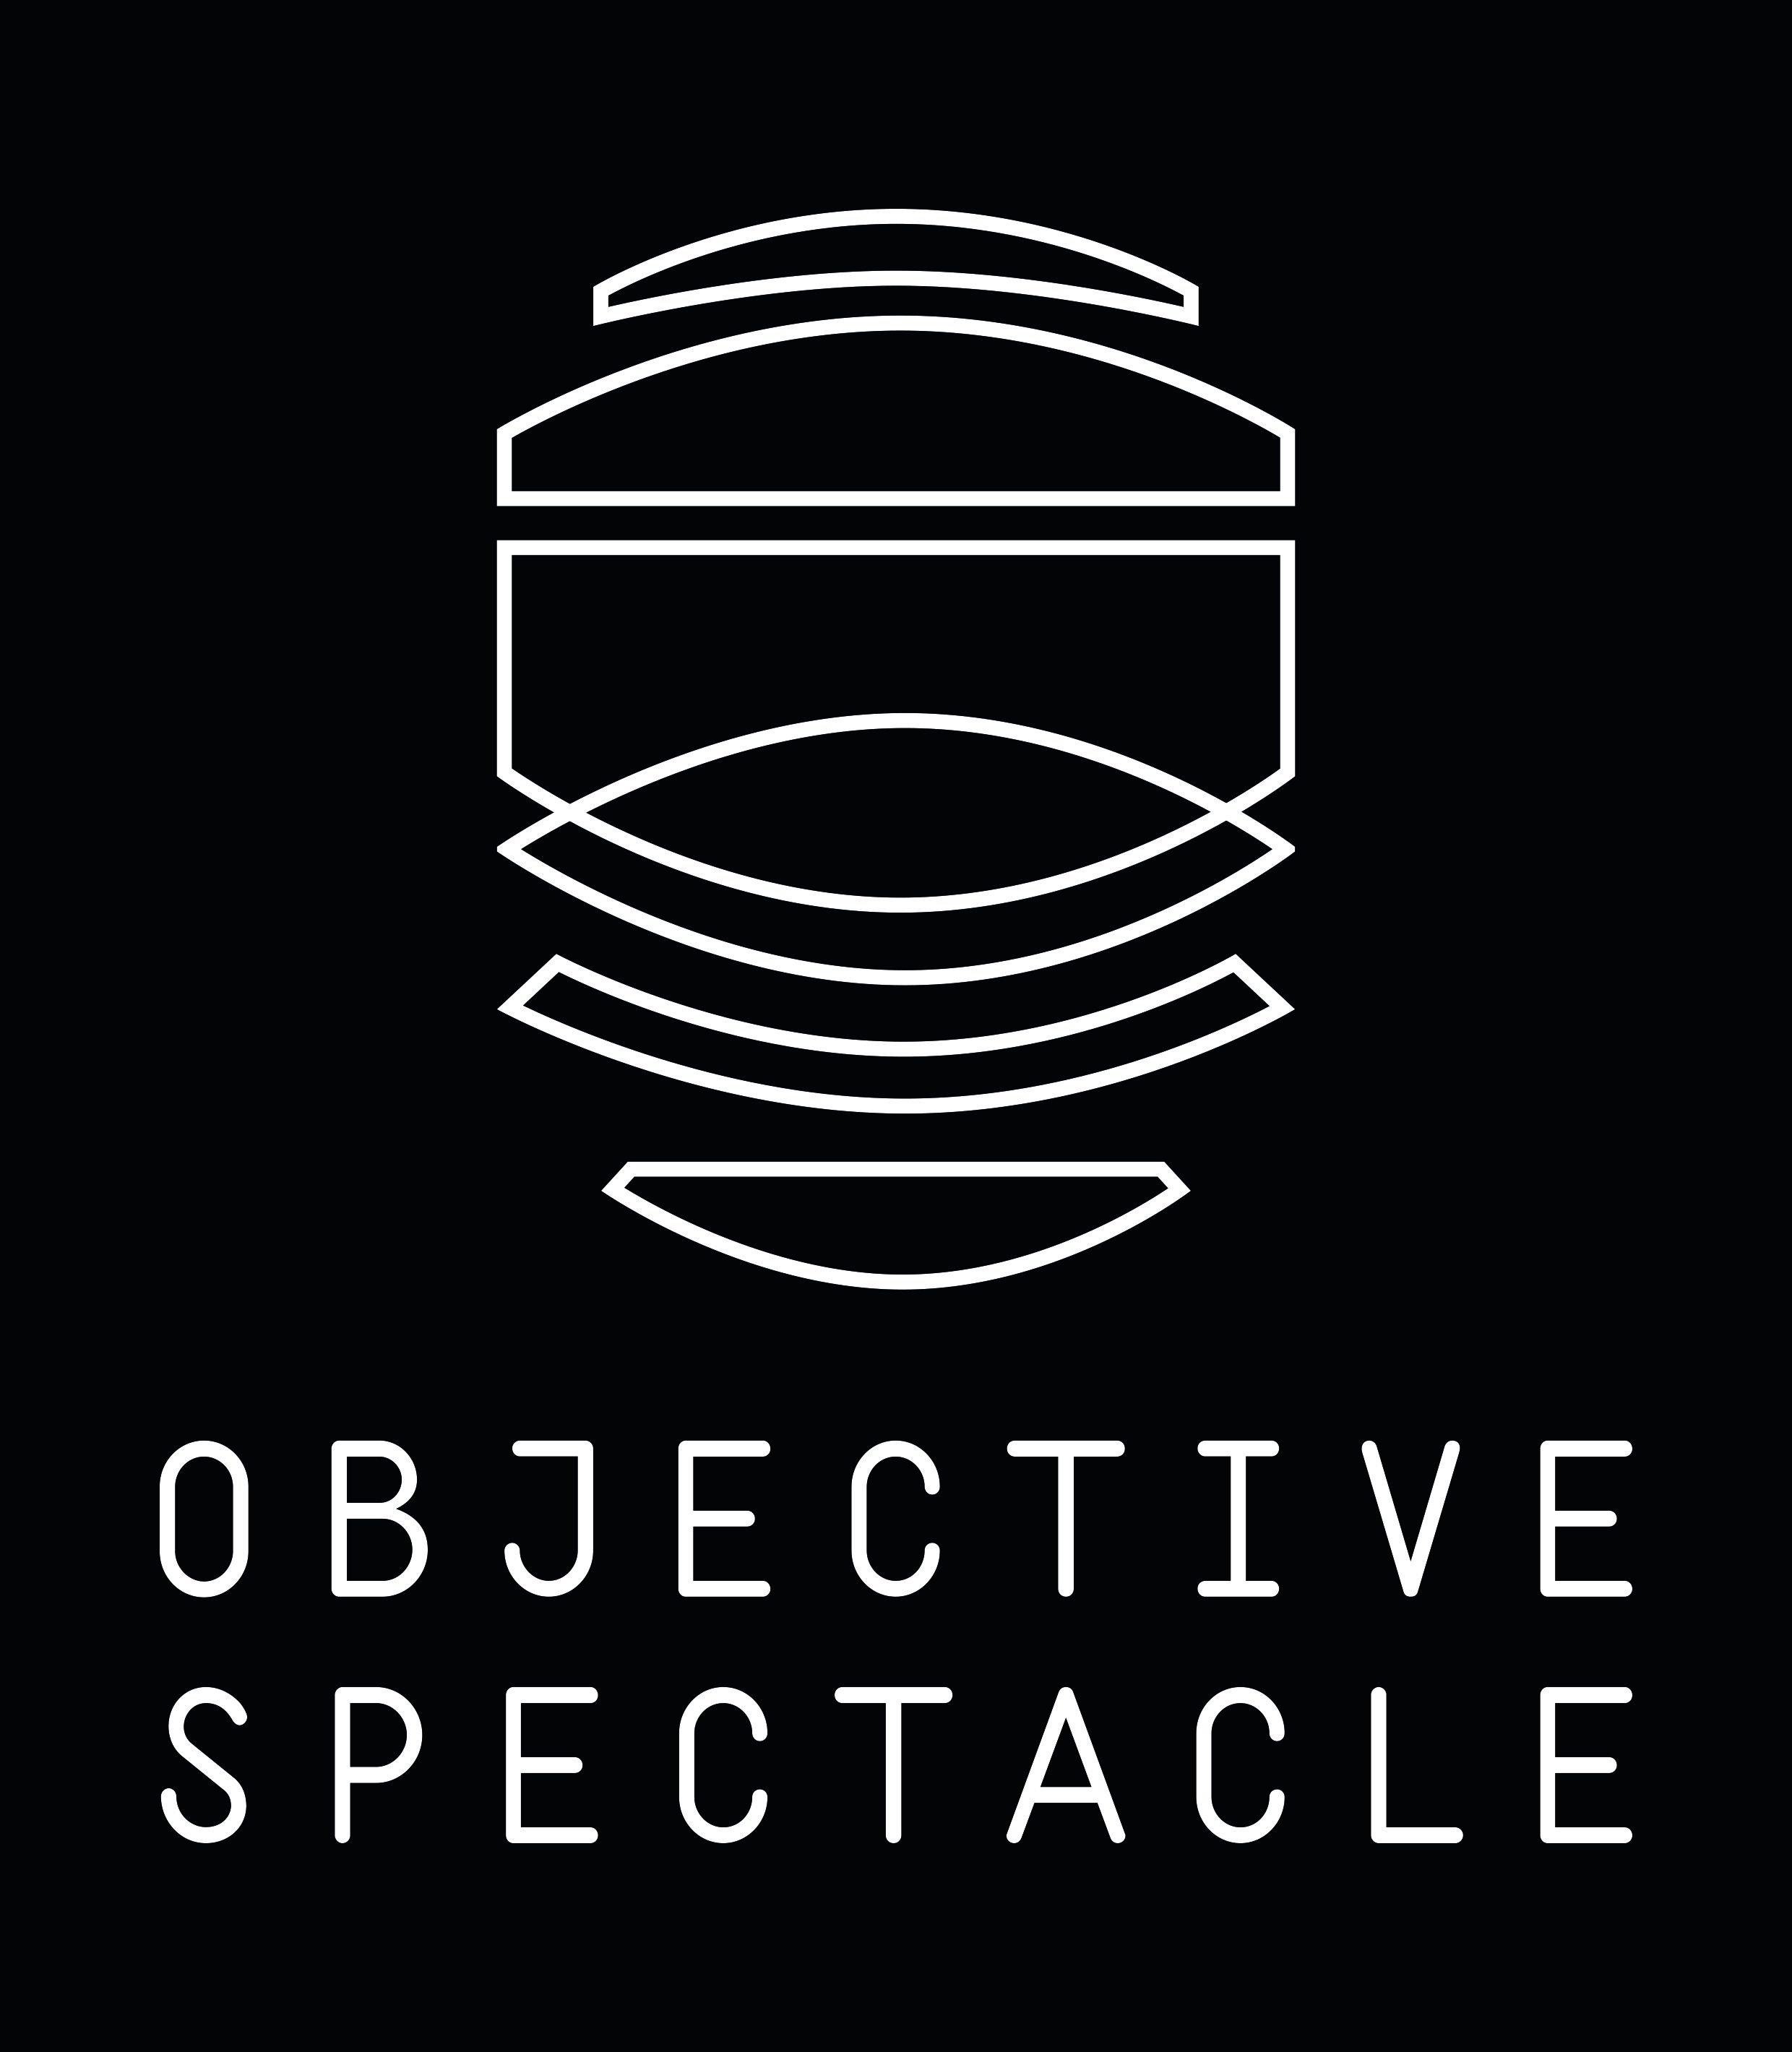 OBJECTIVE SPECTACLE